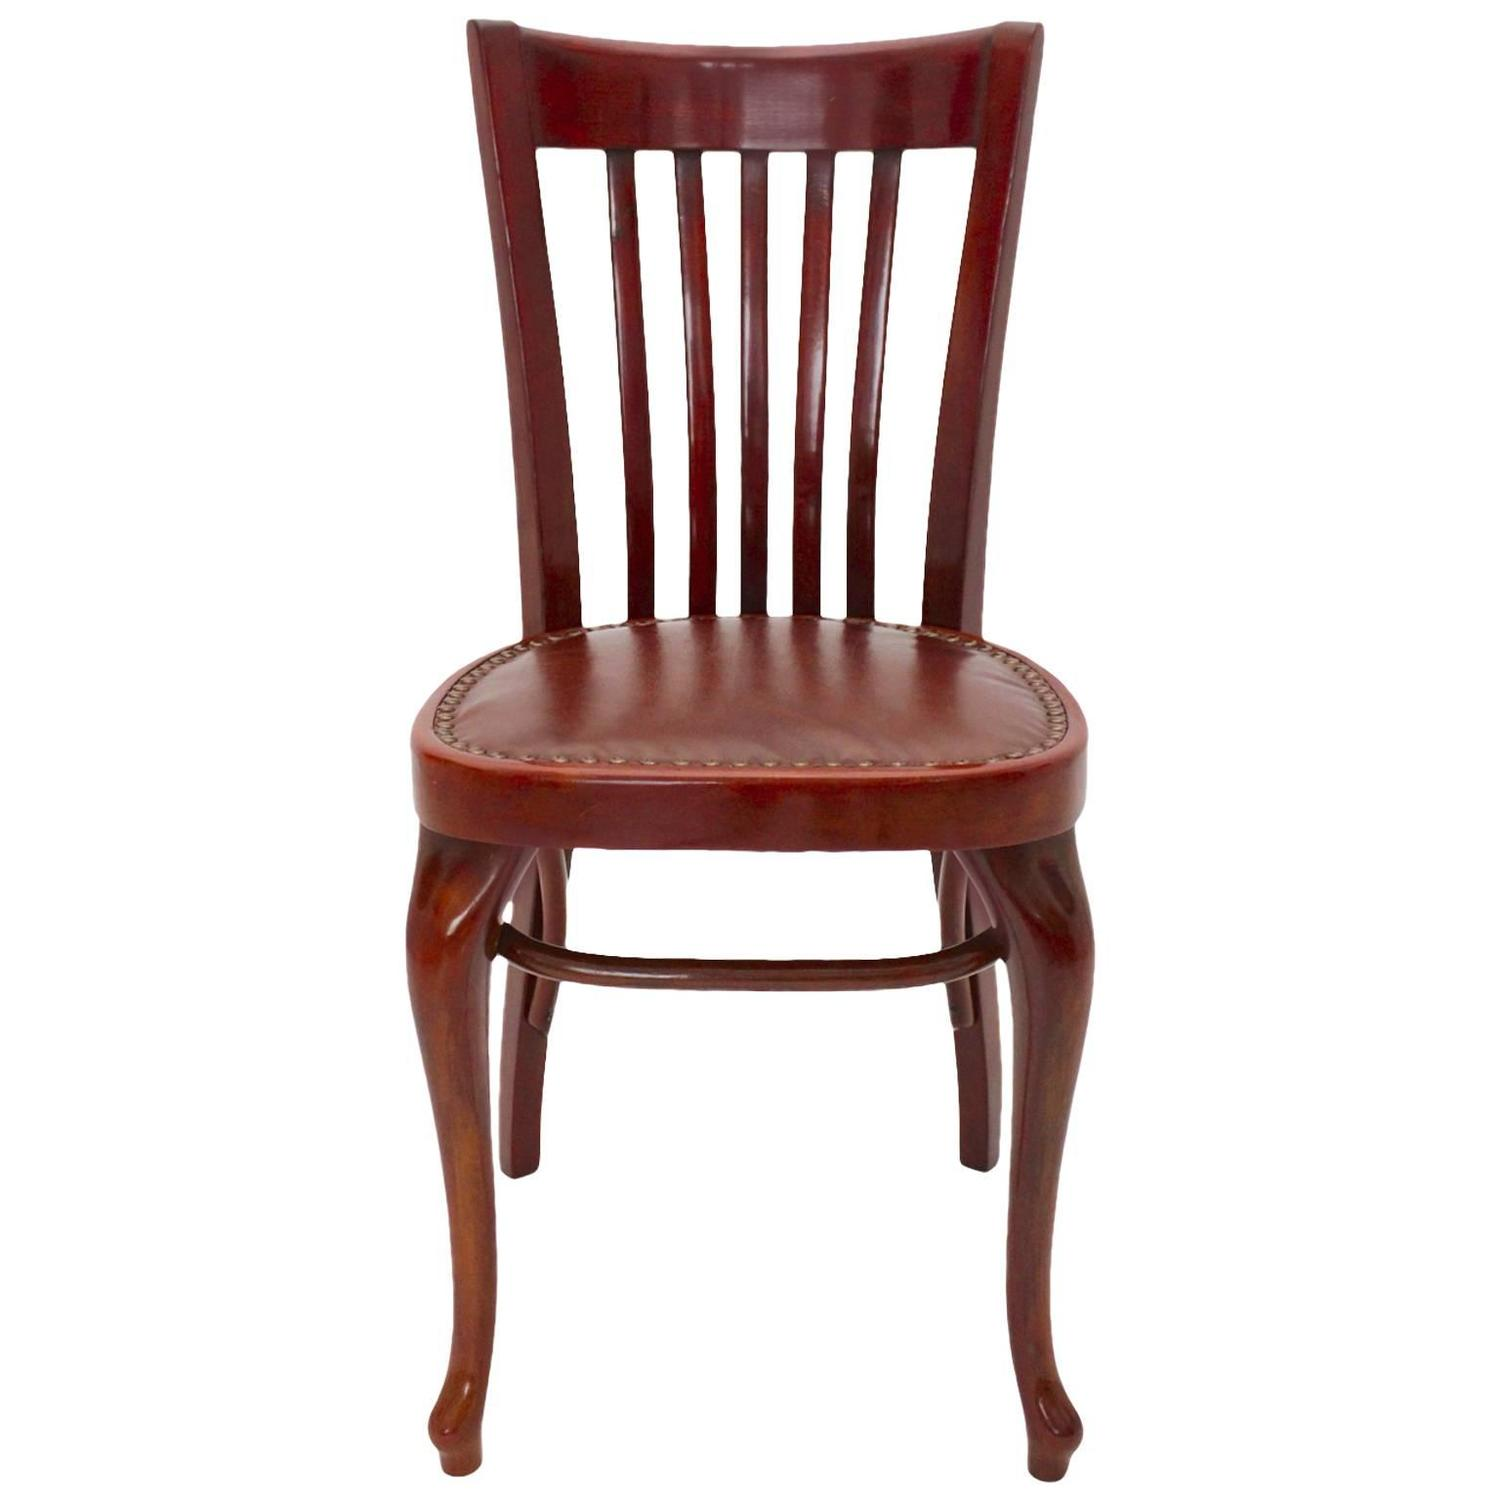 Austrian Thonet Chair No 519 Used by Adolf Loos for Cafe Capua